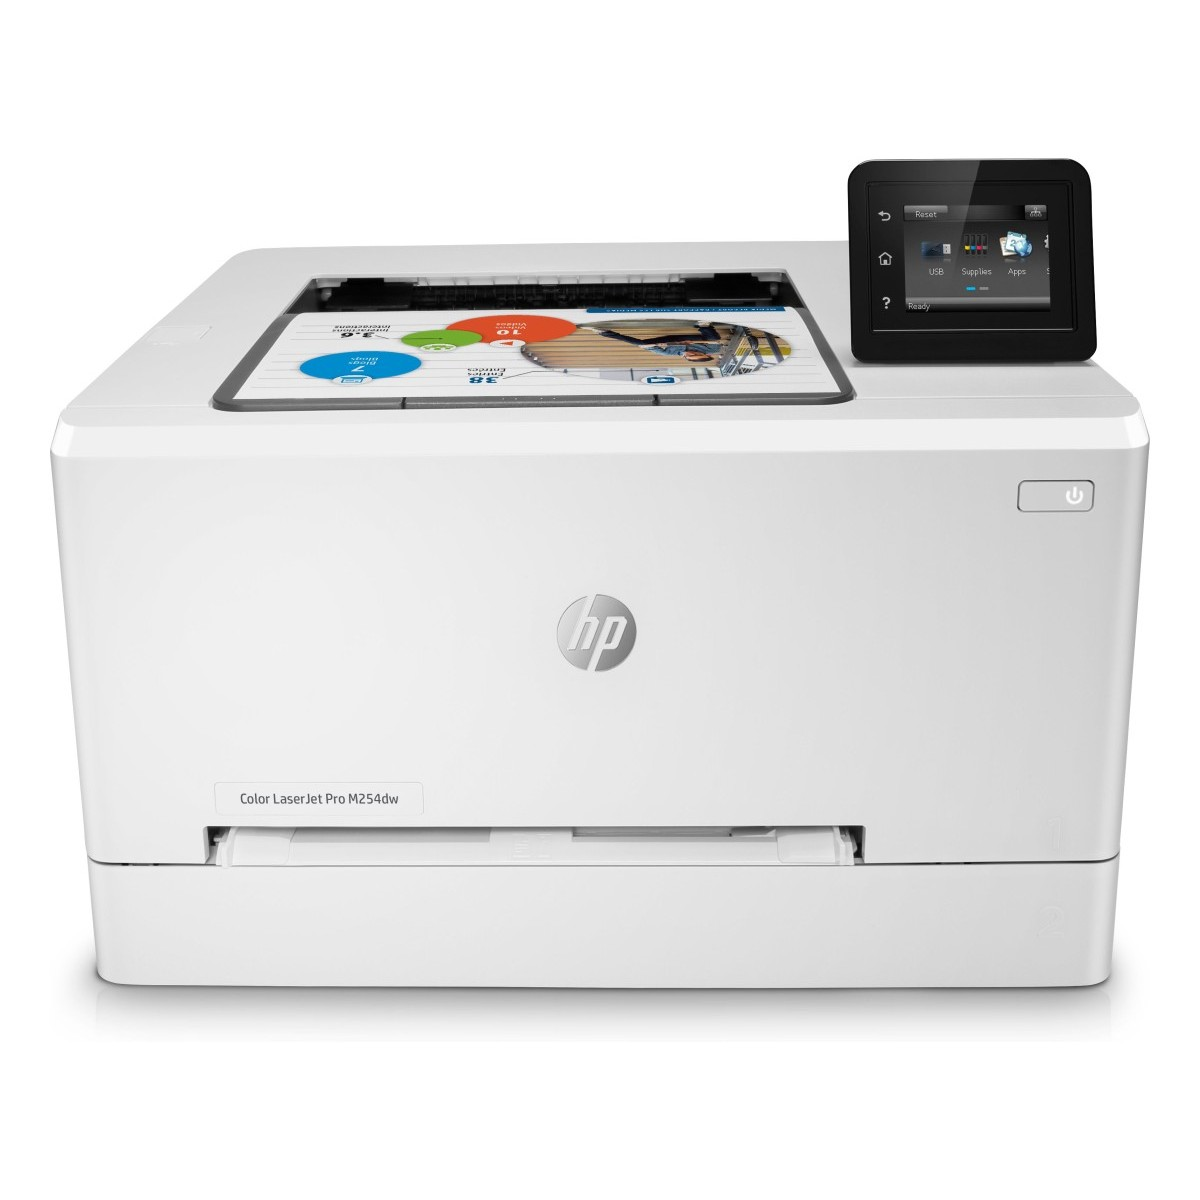 HP Color LaserJet Pro M254dw (A4,21/21 ppm, USB 2.0, Ethernet, Wifi, Duplex)